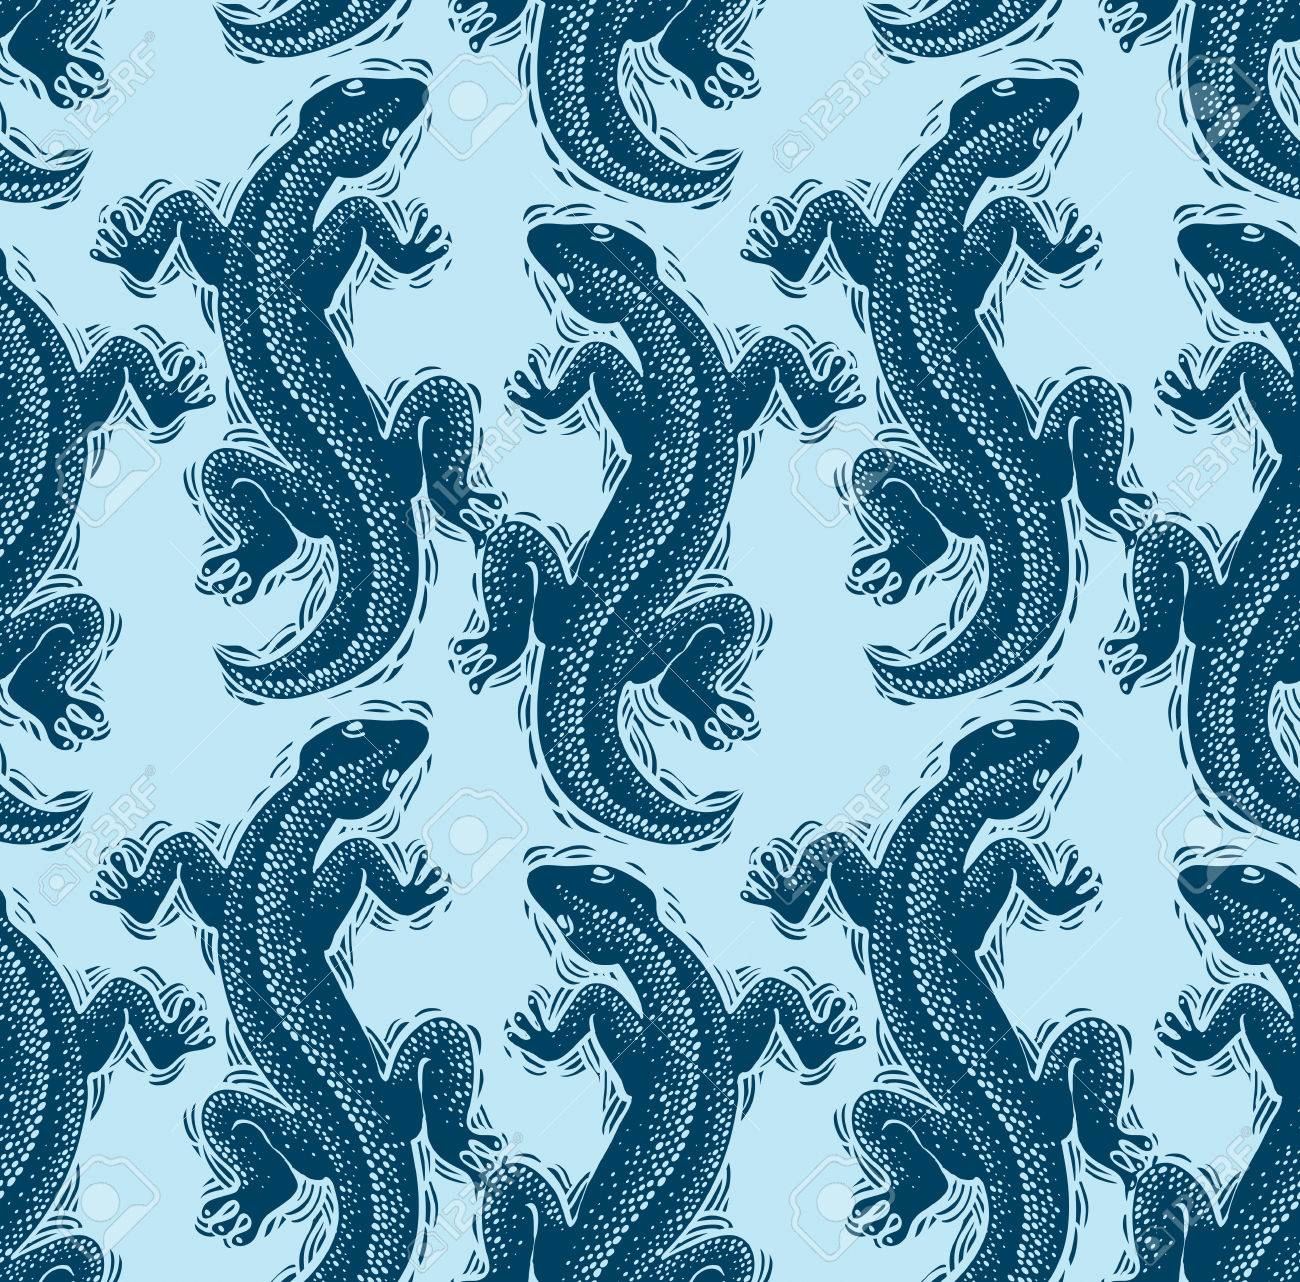 Vector Lizards Wrapping Paper Seamless Pattern With Reptiles 1300x1282